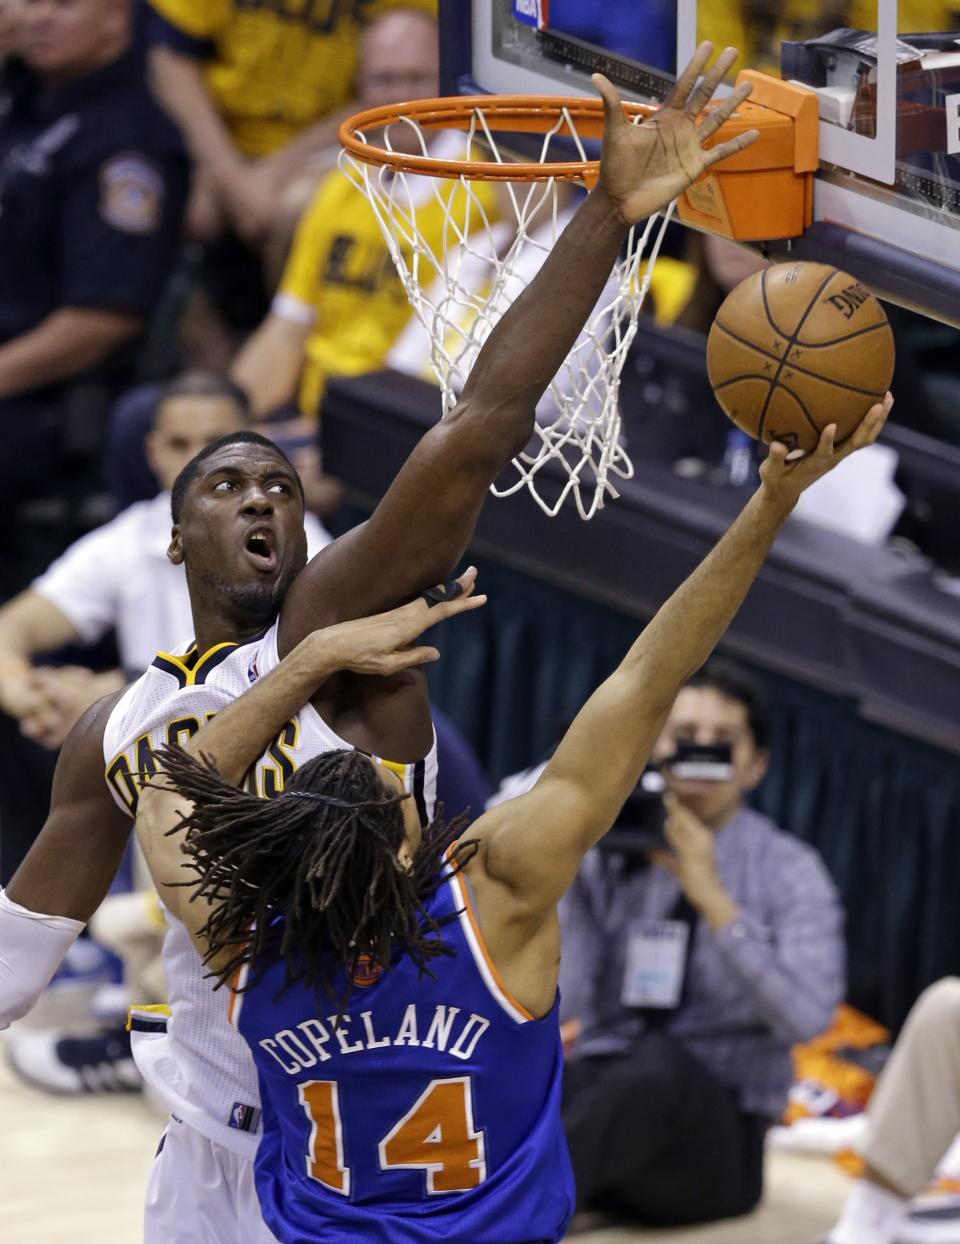 Indiana Pacers center Roy Hibbert, left, blocks the shot of New York Knicks forward Chris Copeland during the second quarter of Game 6 of the Eastern Conference semifinal NBA basketball playoff series in Indianapolis, Saturday, May 18, 2013. (AP Photo/Michael Conroy)